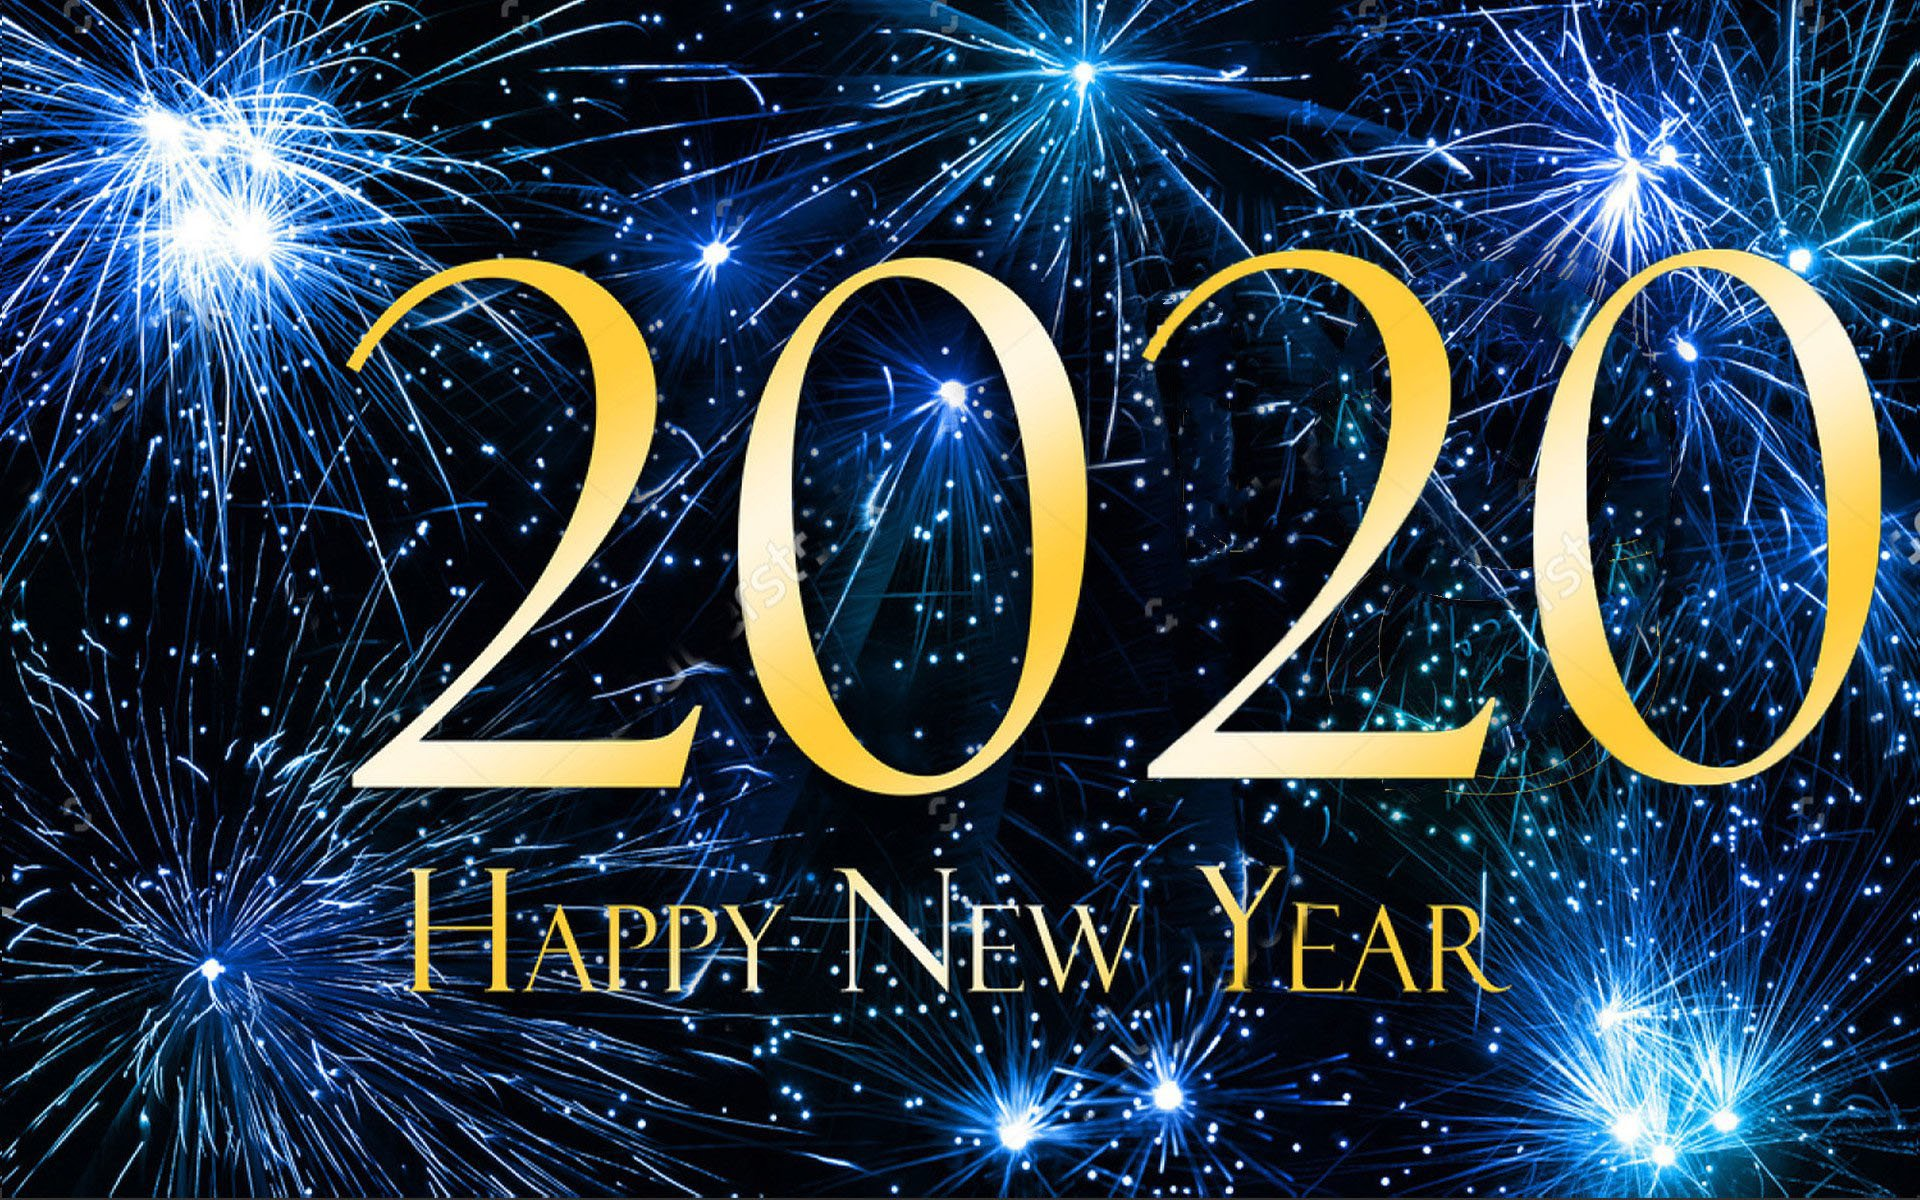 Happy New Year 1920x1080 Wallpapers ...